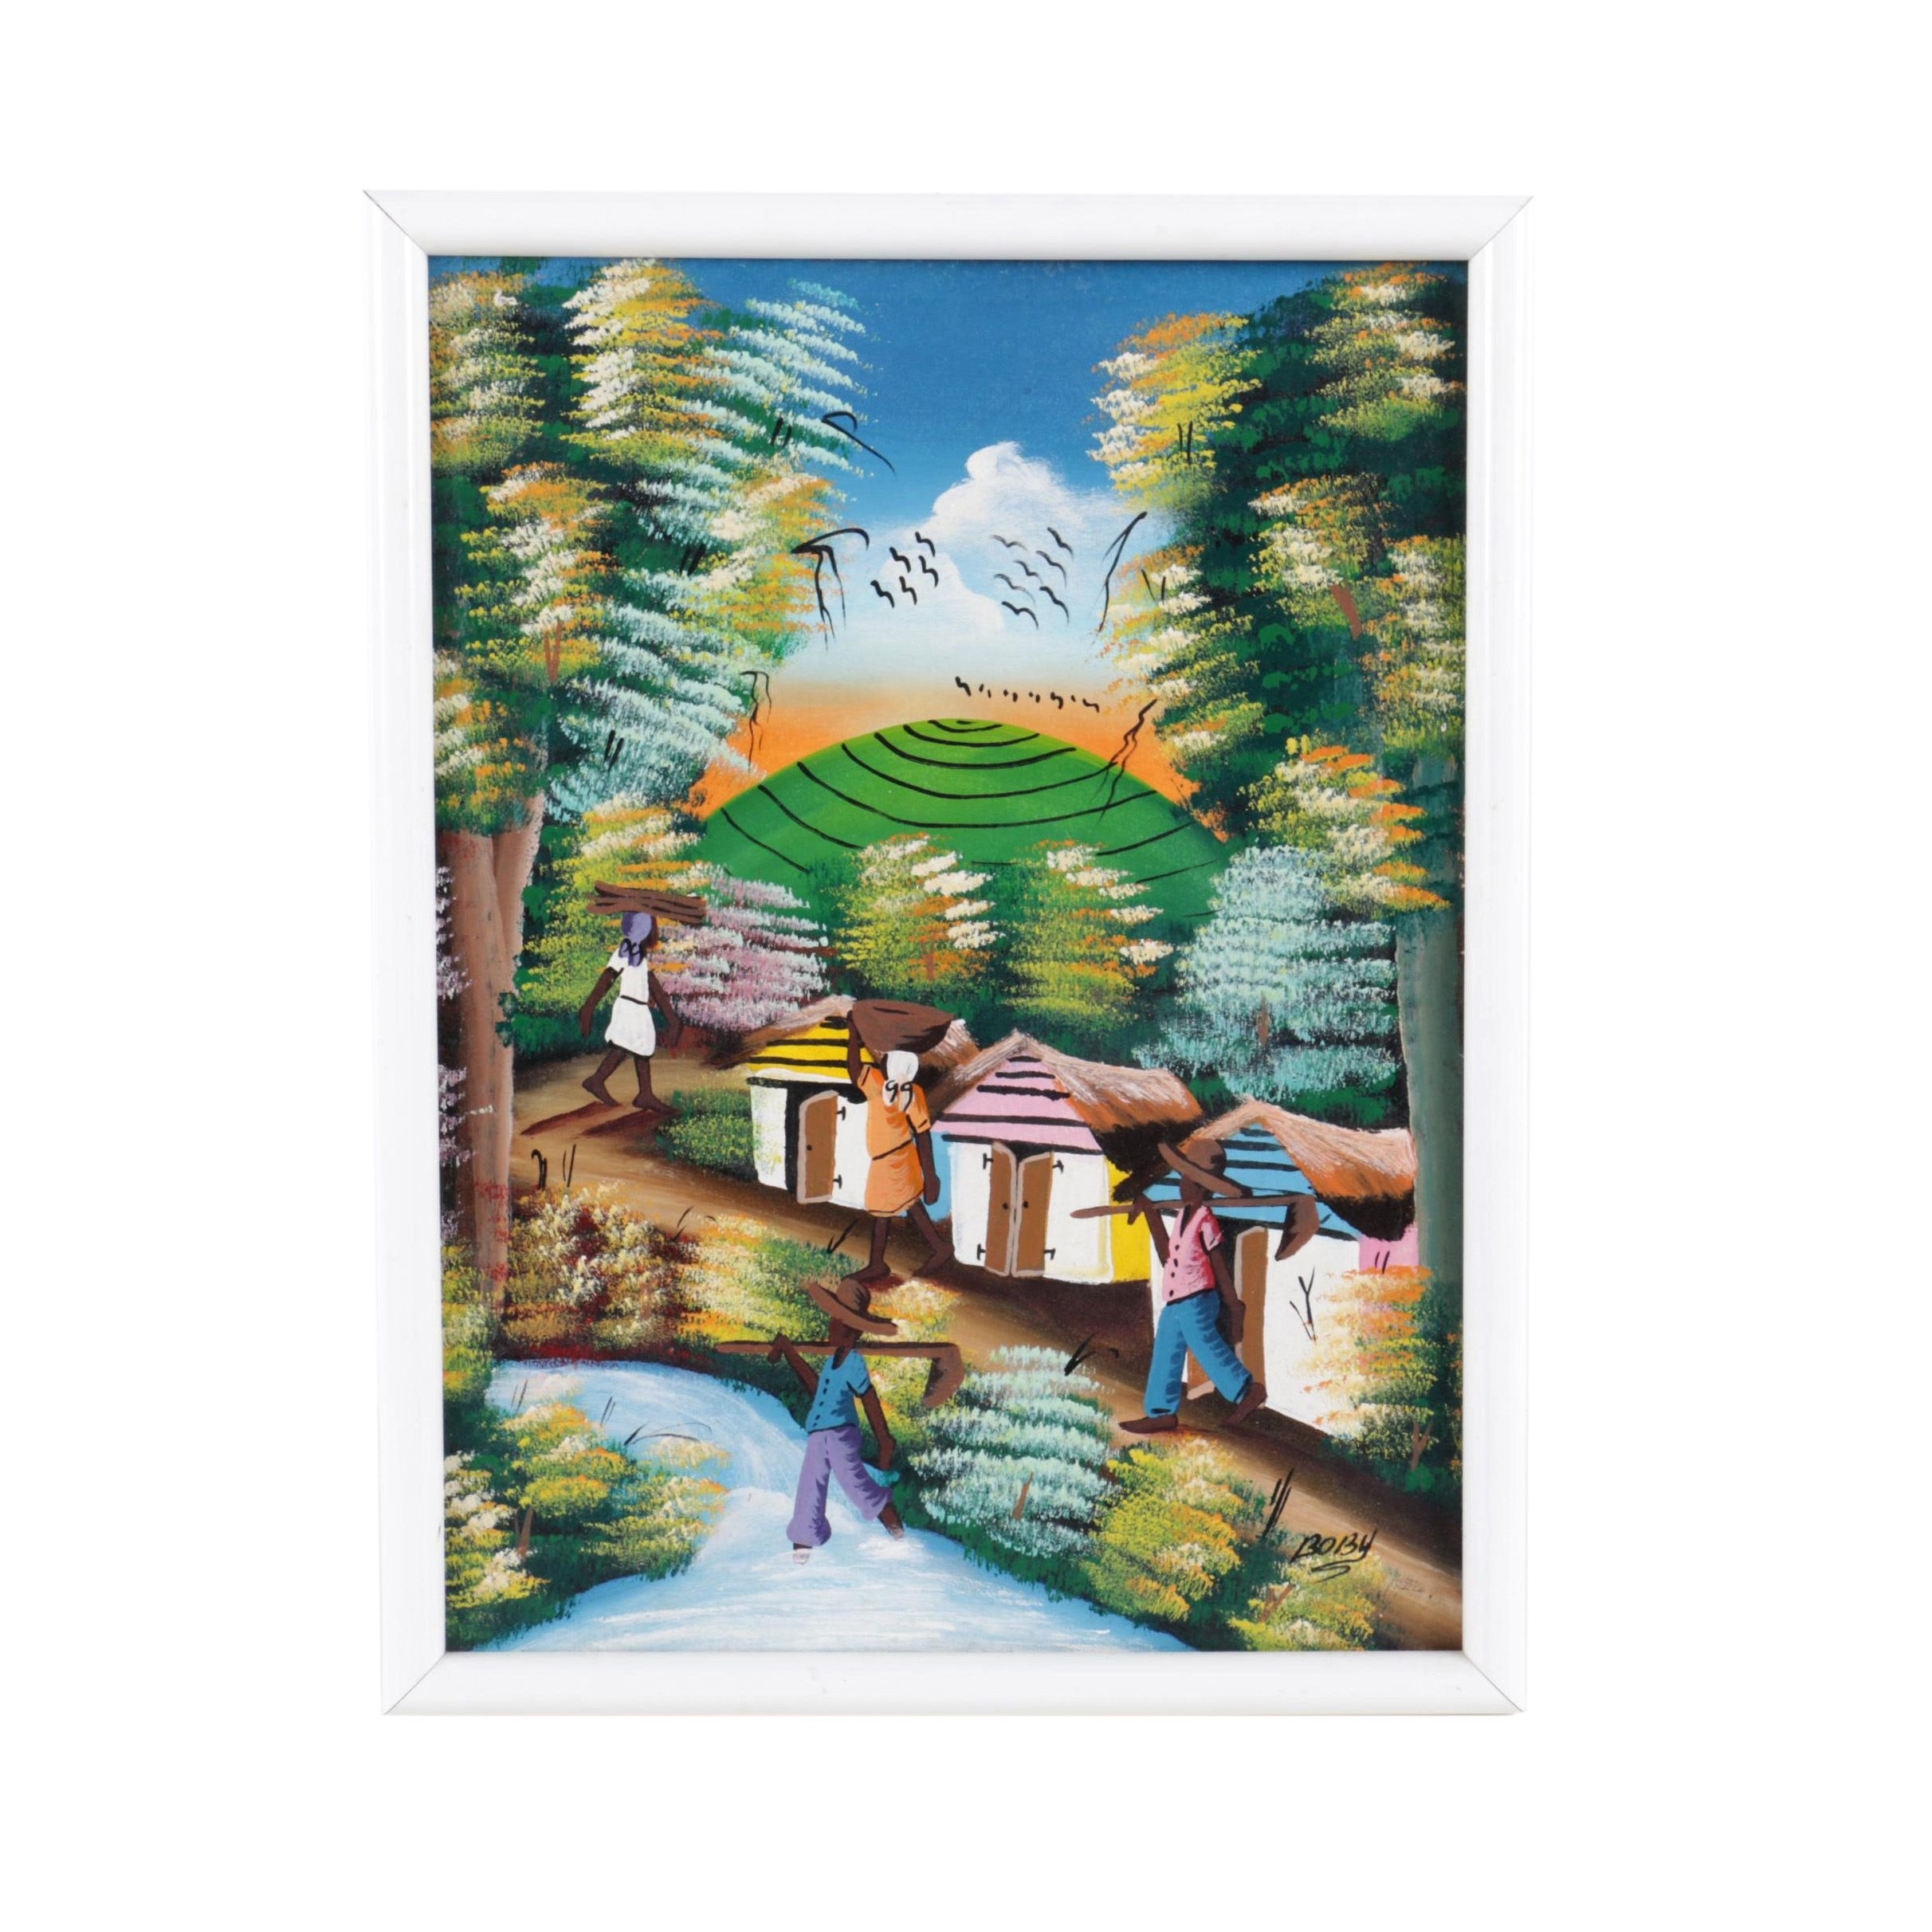 Boby Oil Painting on Canvas of a Village Scene